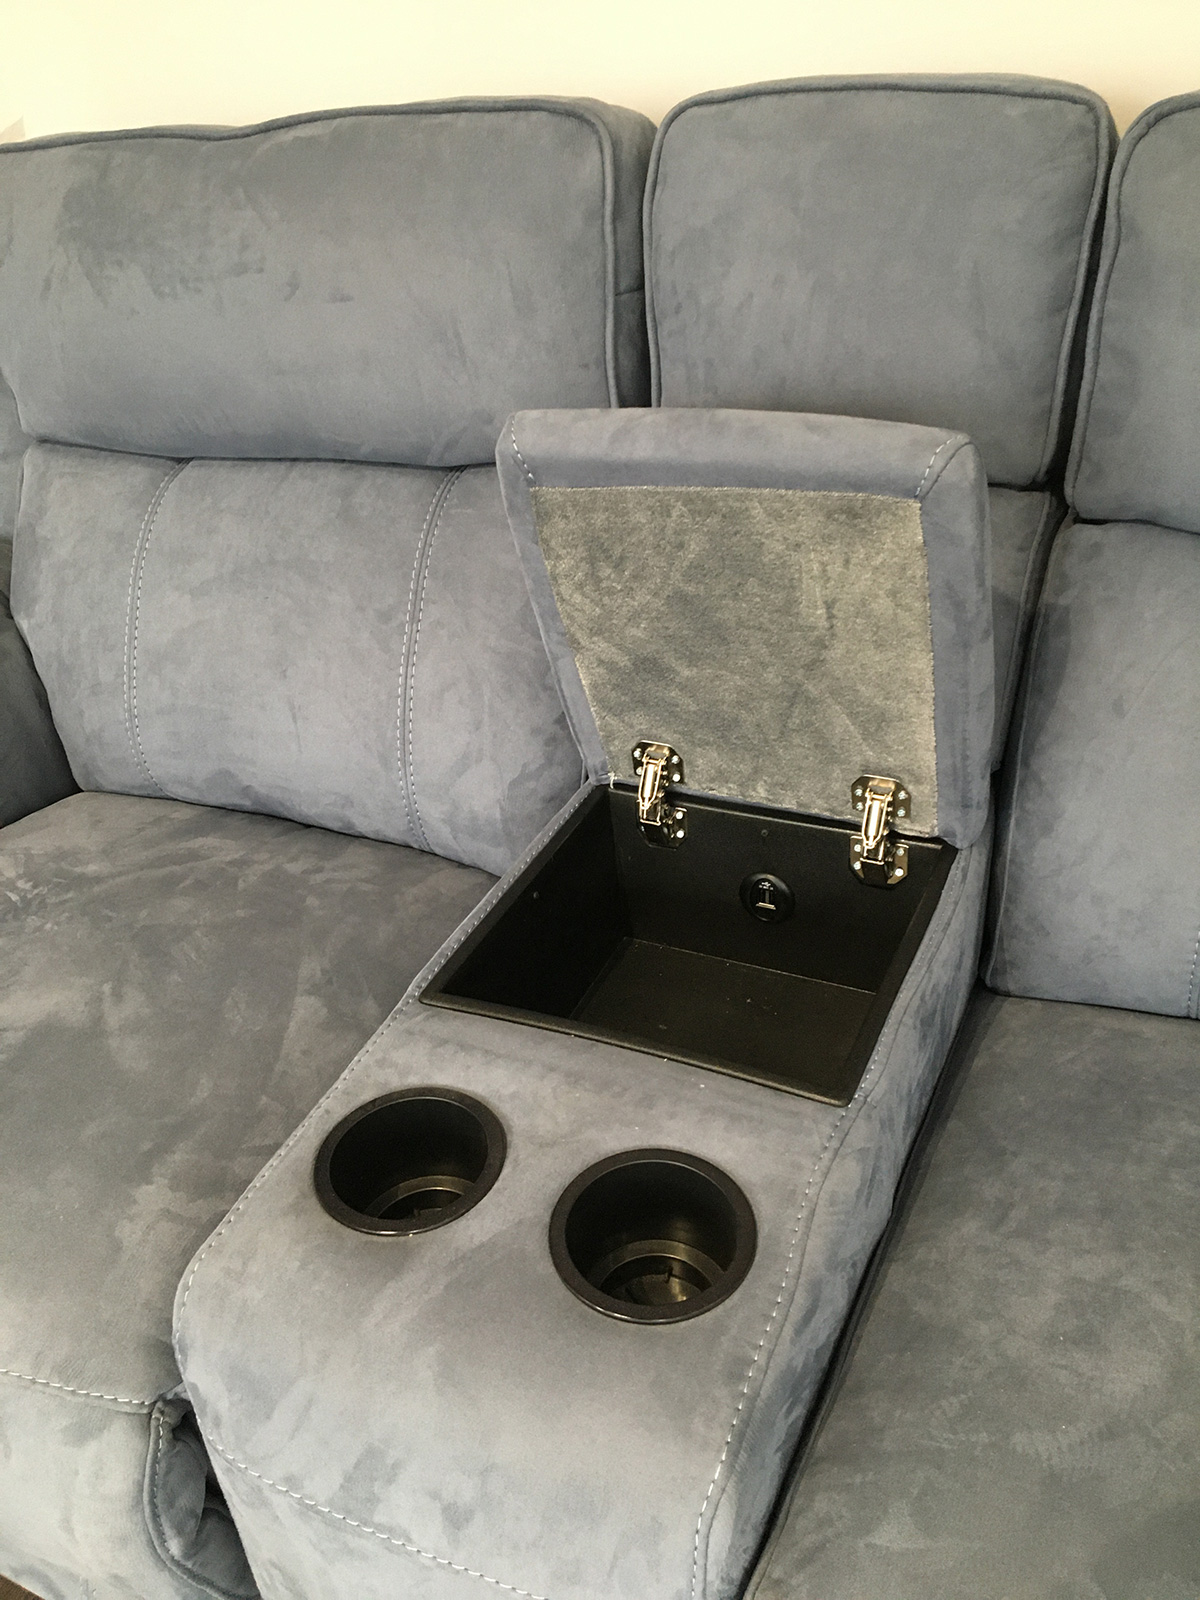 FrontRow™ Serenity Home Cinema Seating - Luno cupholder